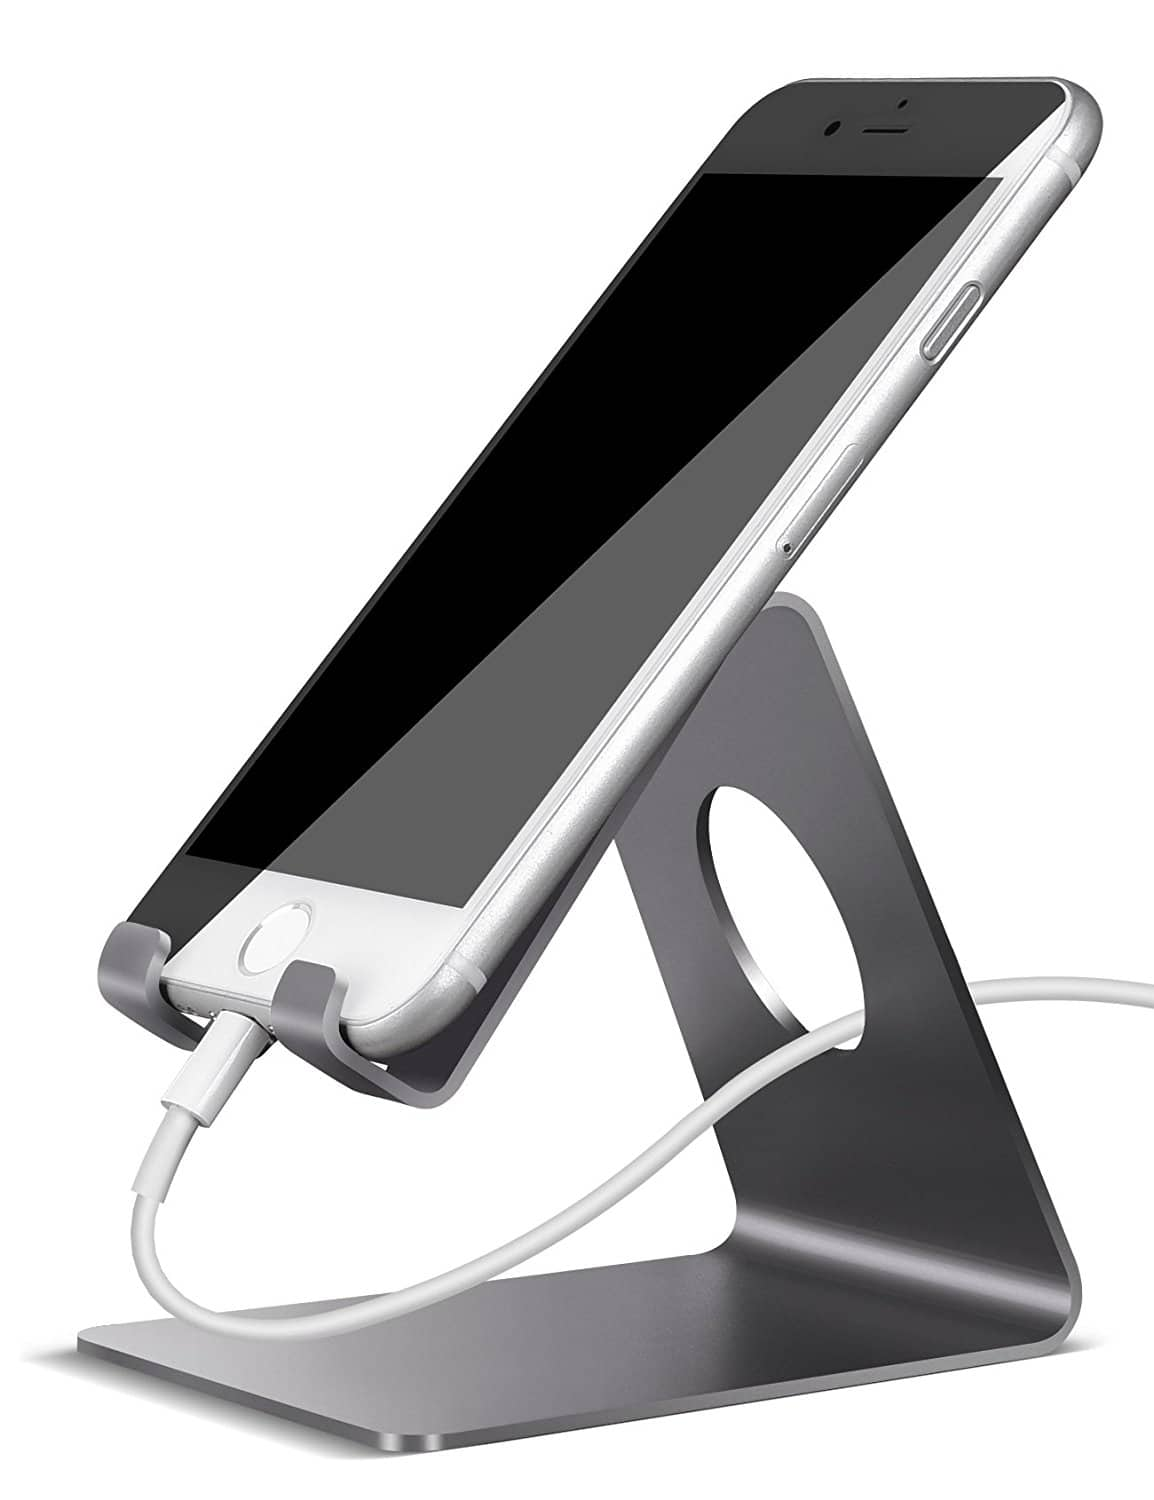 Lightning deal: Cell Phone Stand, Lamicall iPhone Dock for $7.48 @Amazon